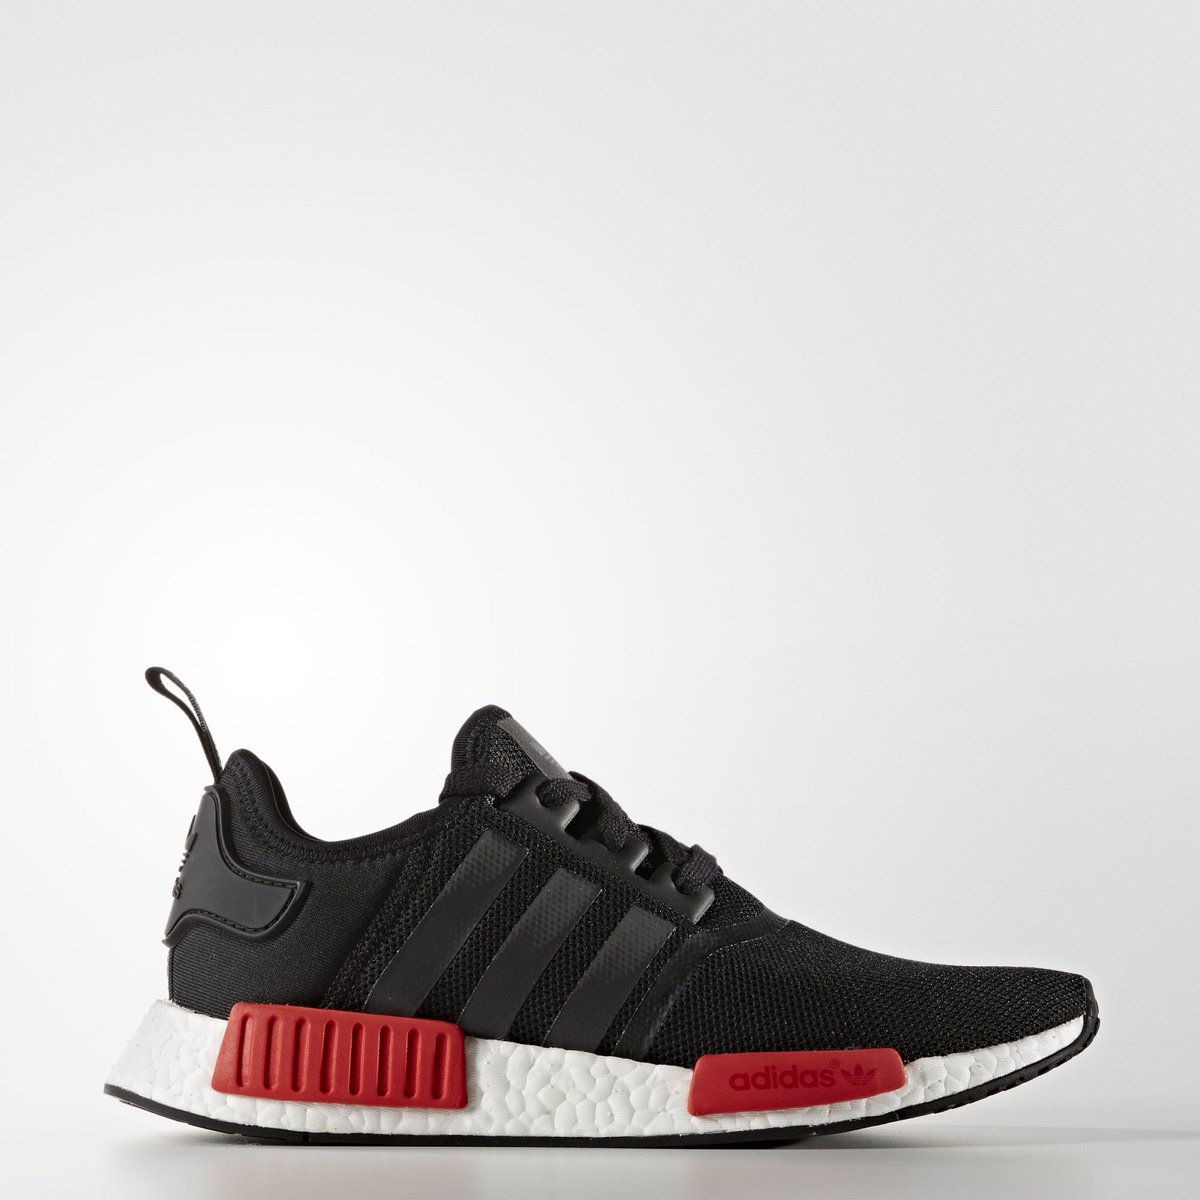 6710a28a4 adidas alerts on Twitter